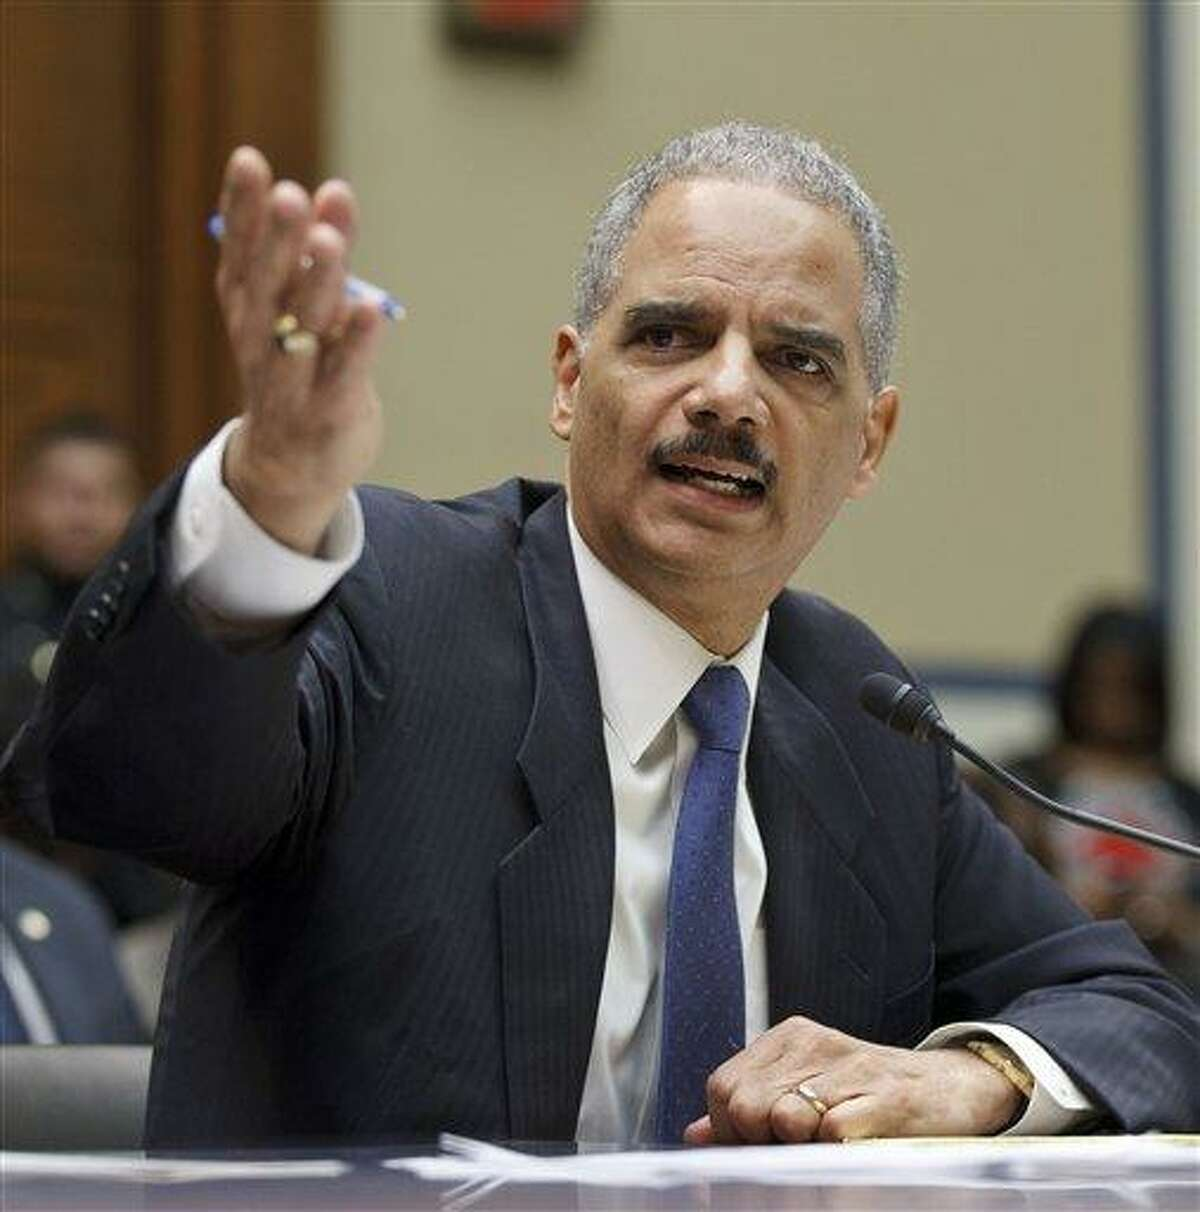 Attorney General Eric Holder testifies on Capitol Hill in Washington today before the House Oversight and Government Reform Committee. Associated Press